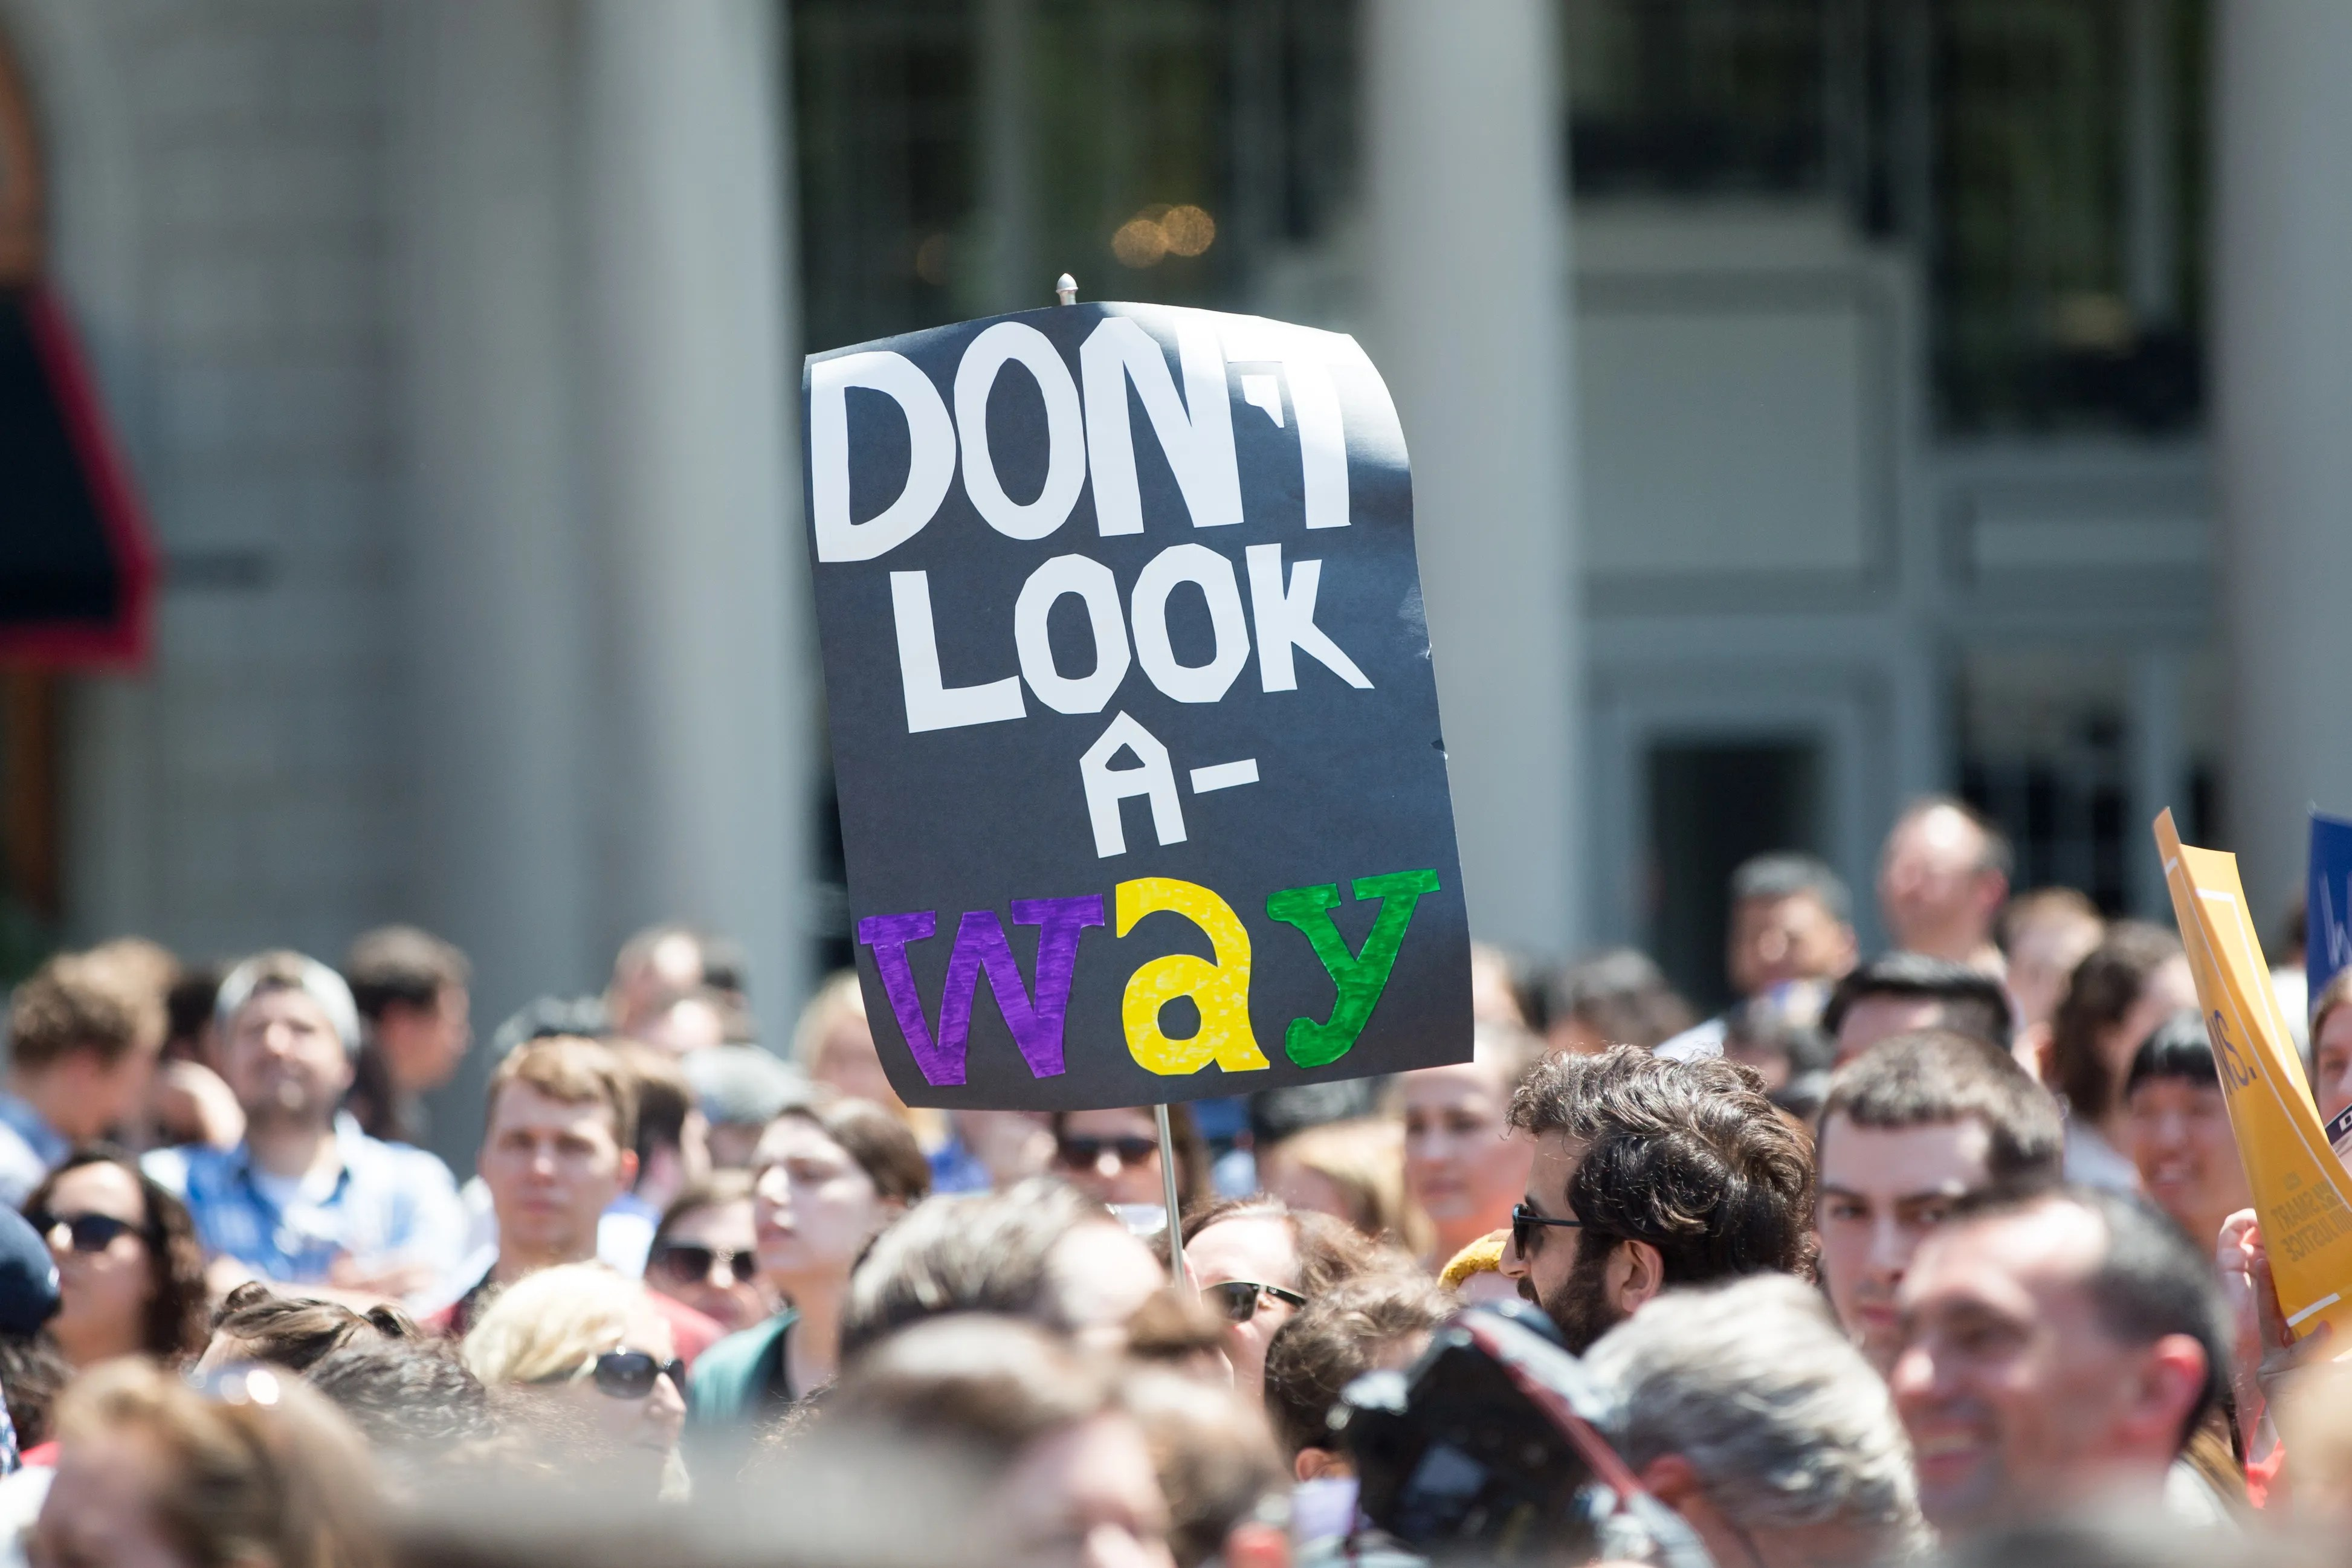 Wayfair Walkout Workers Getting Comfortable Protesting